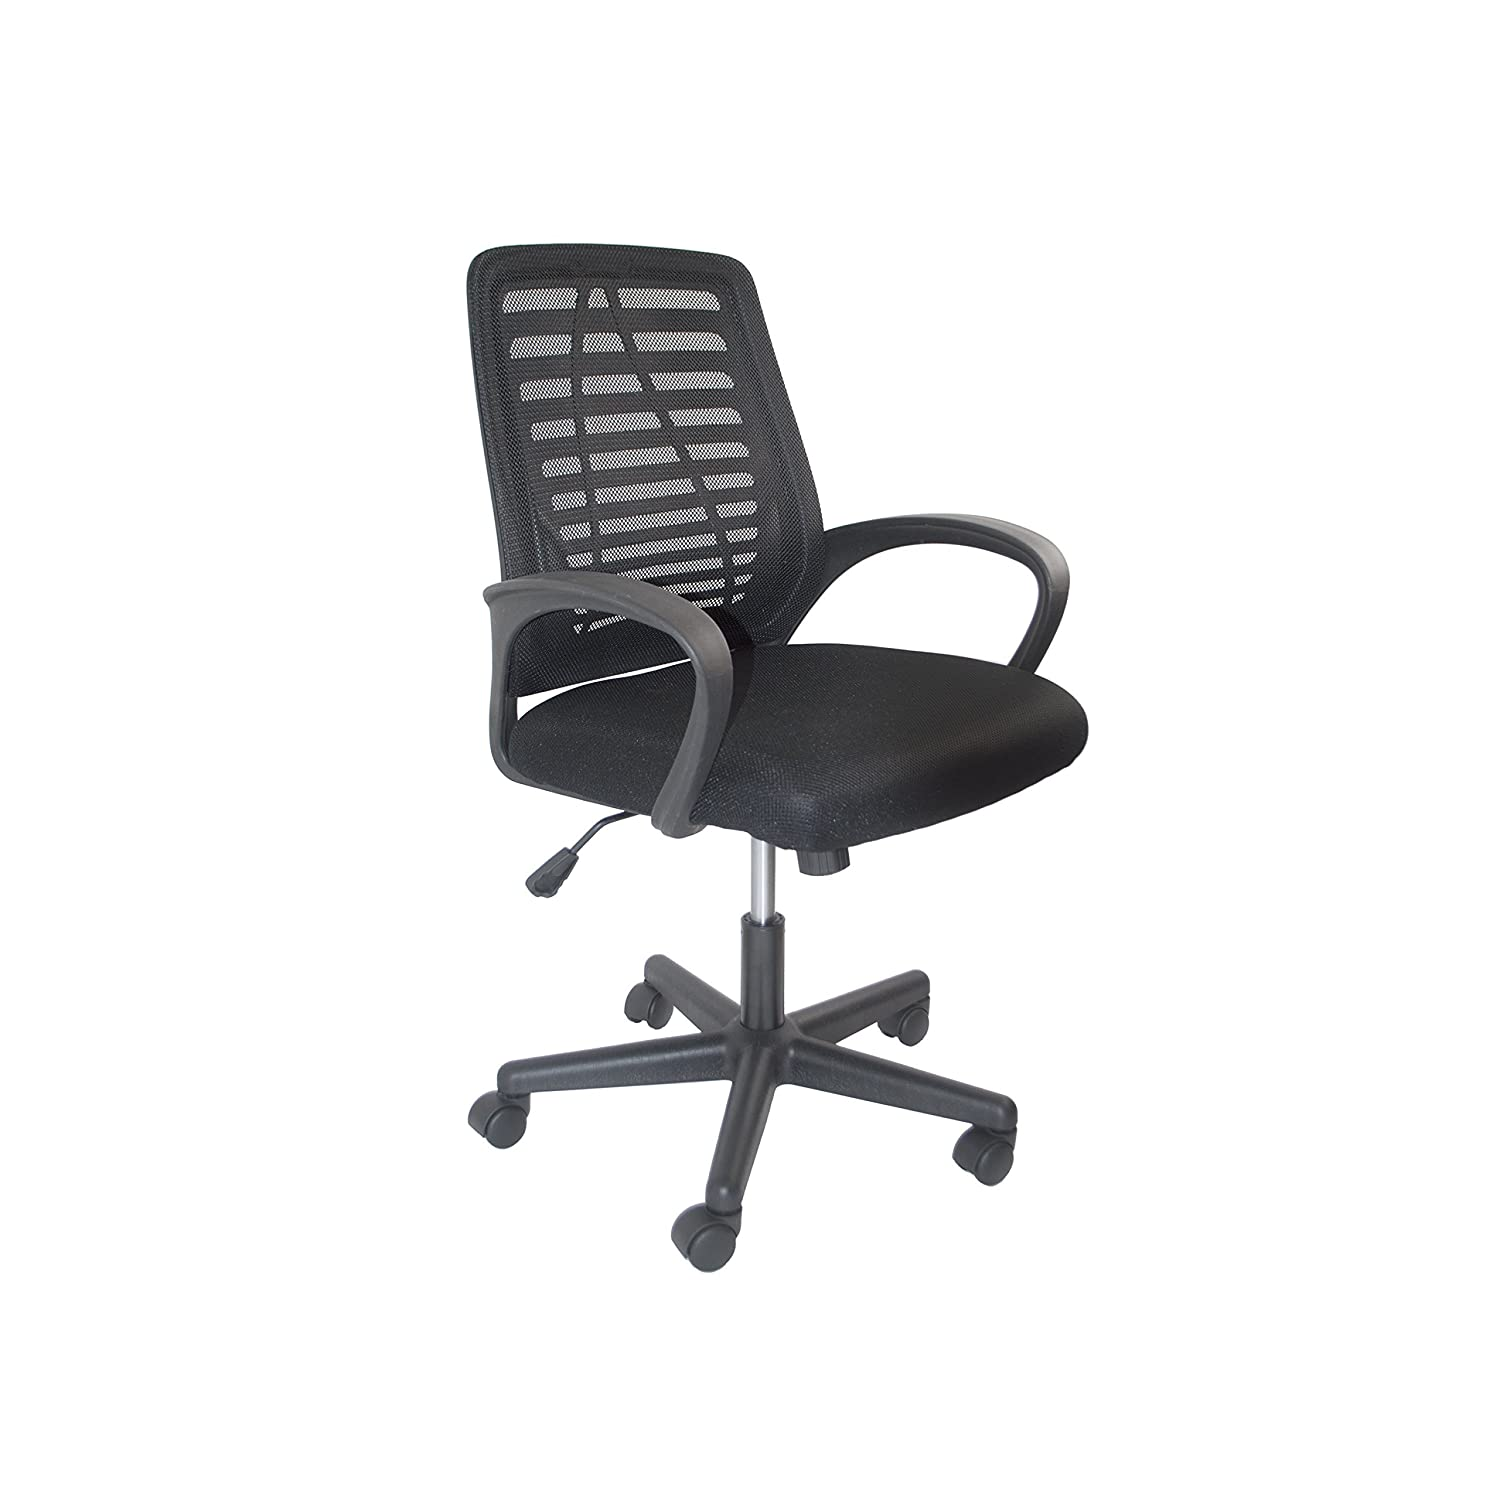 ALEKO ALCM815BL Ergonomic Office Chair, High Back Mesh Chair with Armrest, Black